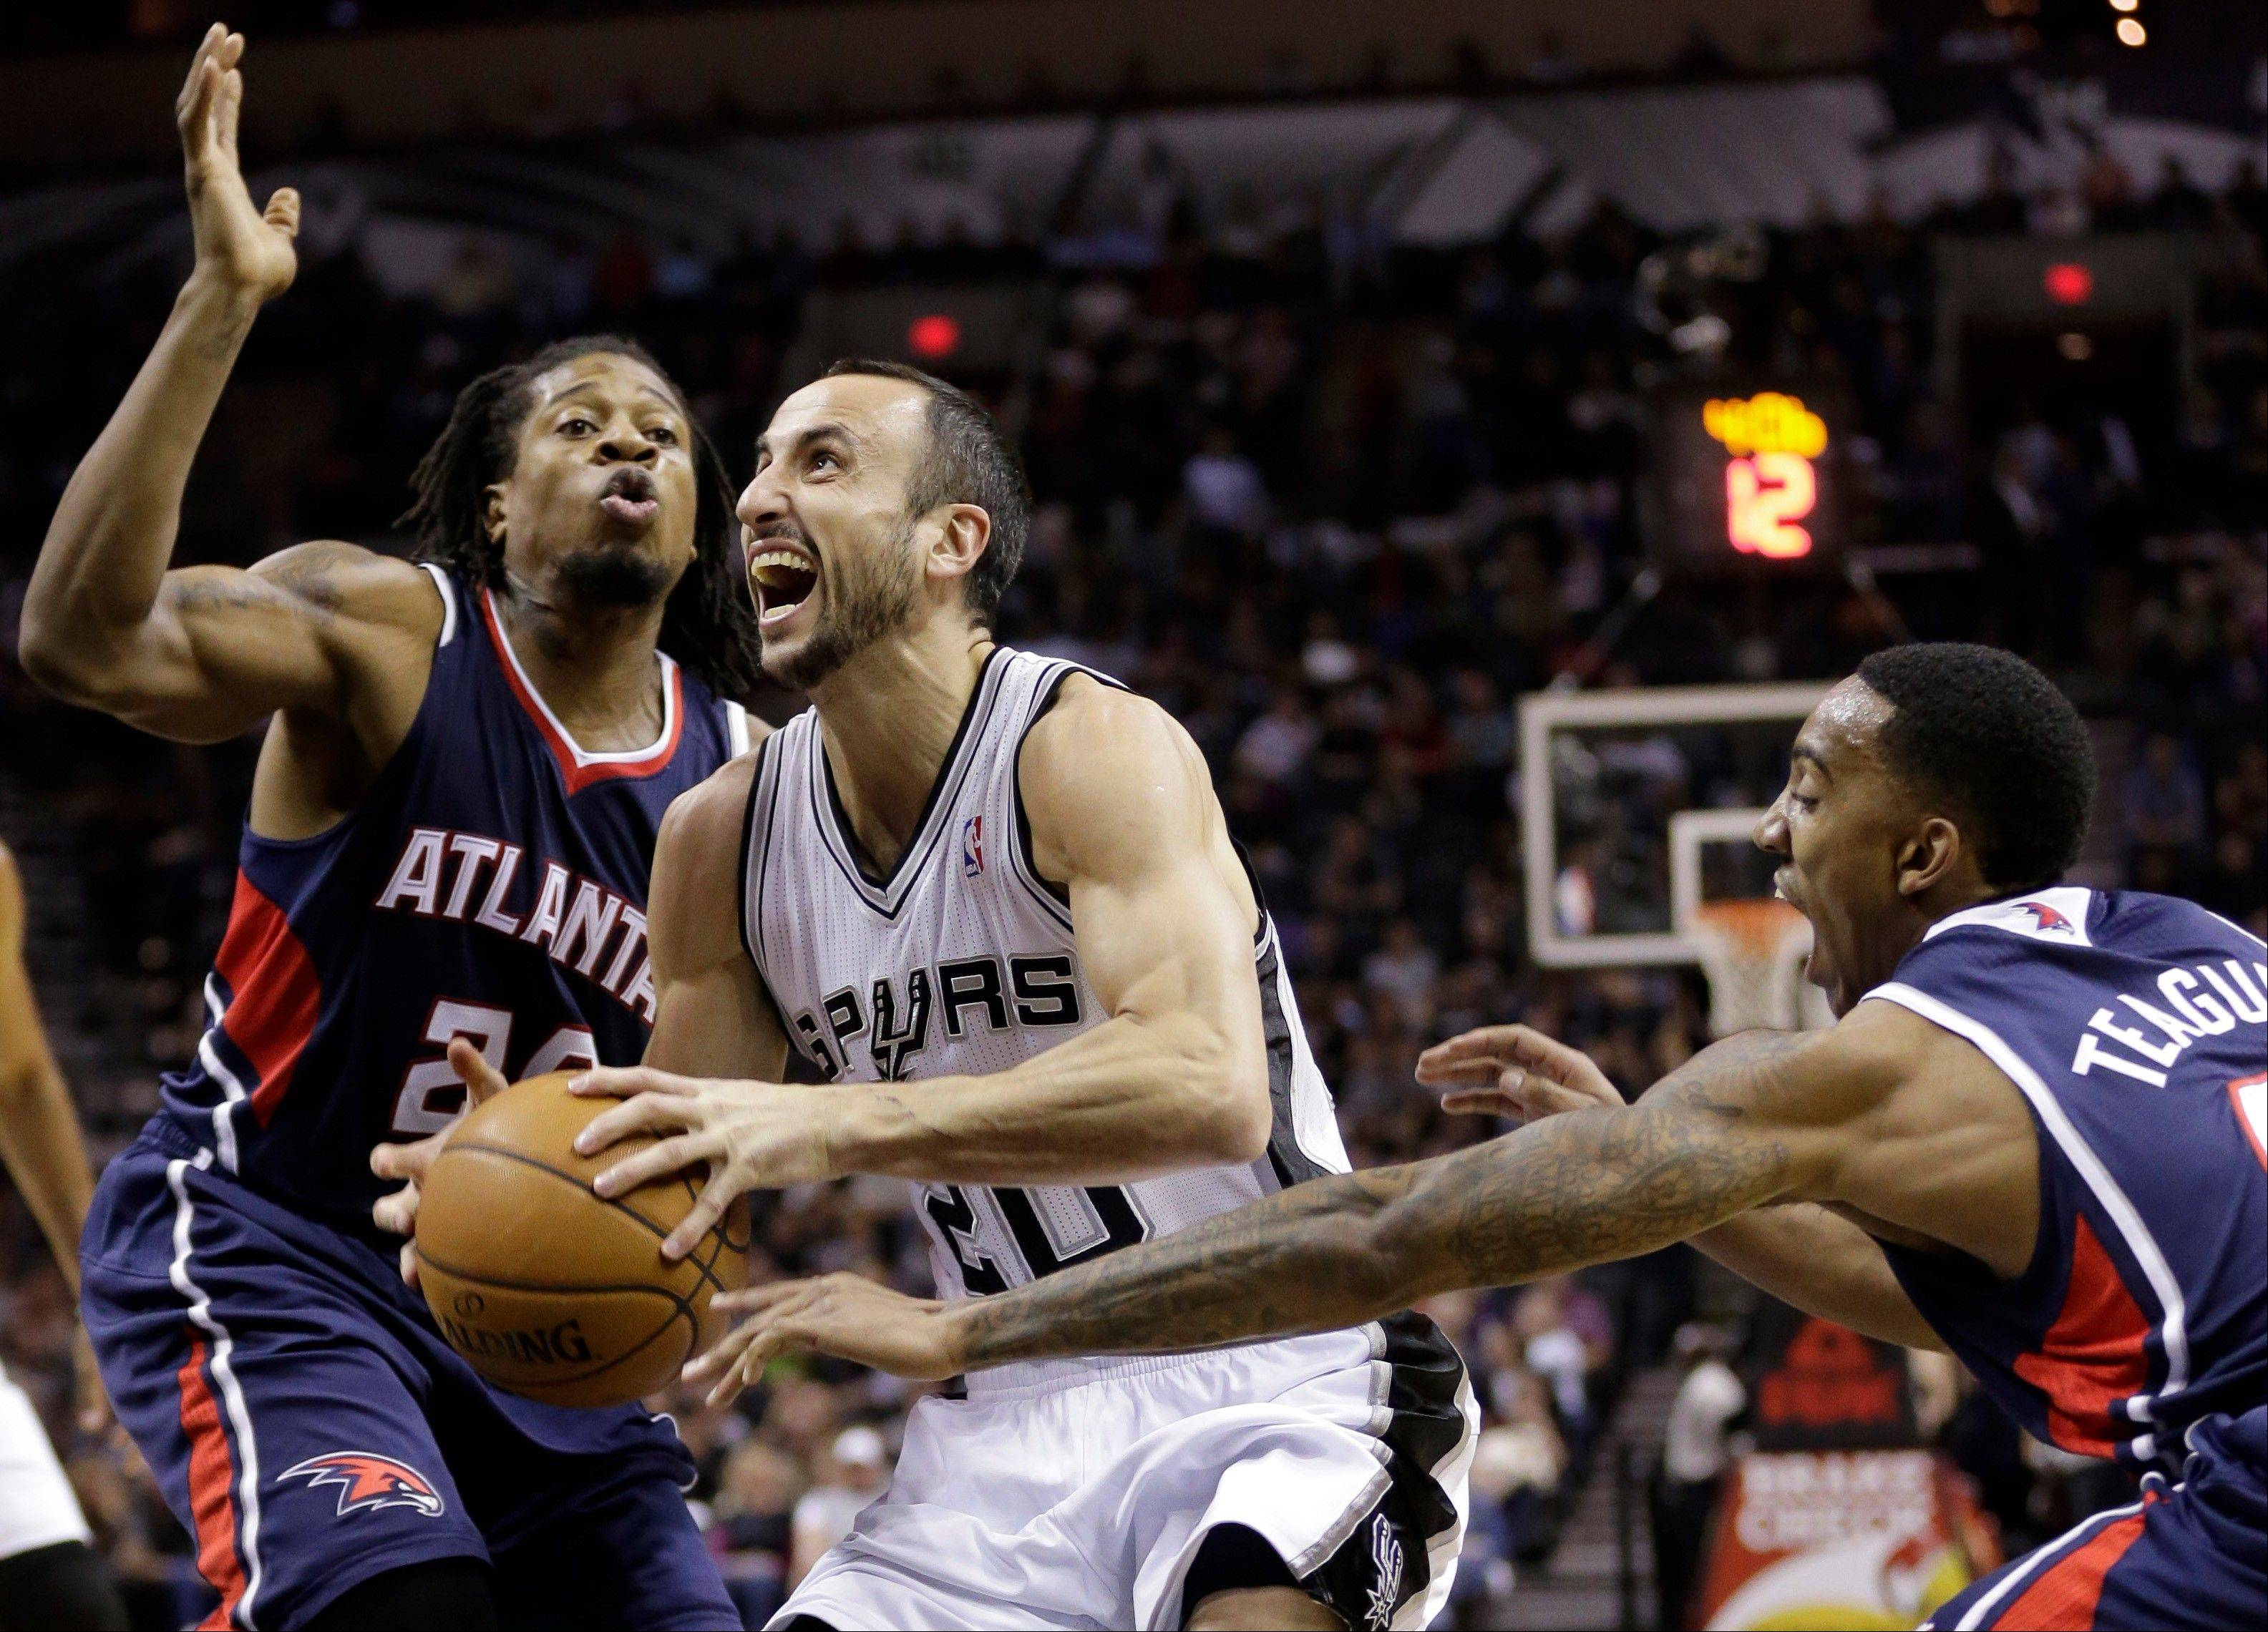 San Antonio Spurs� Manu Ginobili, center, of Argentina, is pressured by Atlanta Hawks� Cartier Martin, left, and Jeff Teague, right, as he drives to the basket during the first half of an NBA basketball game Monday in San Antonio.